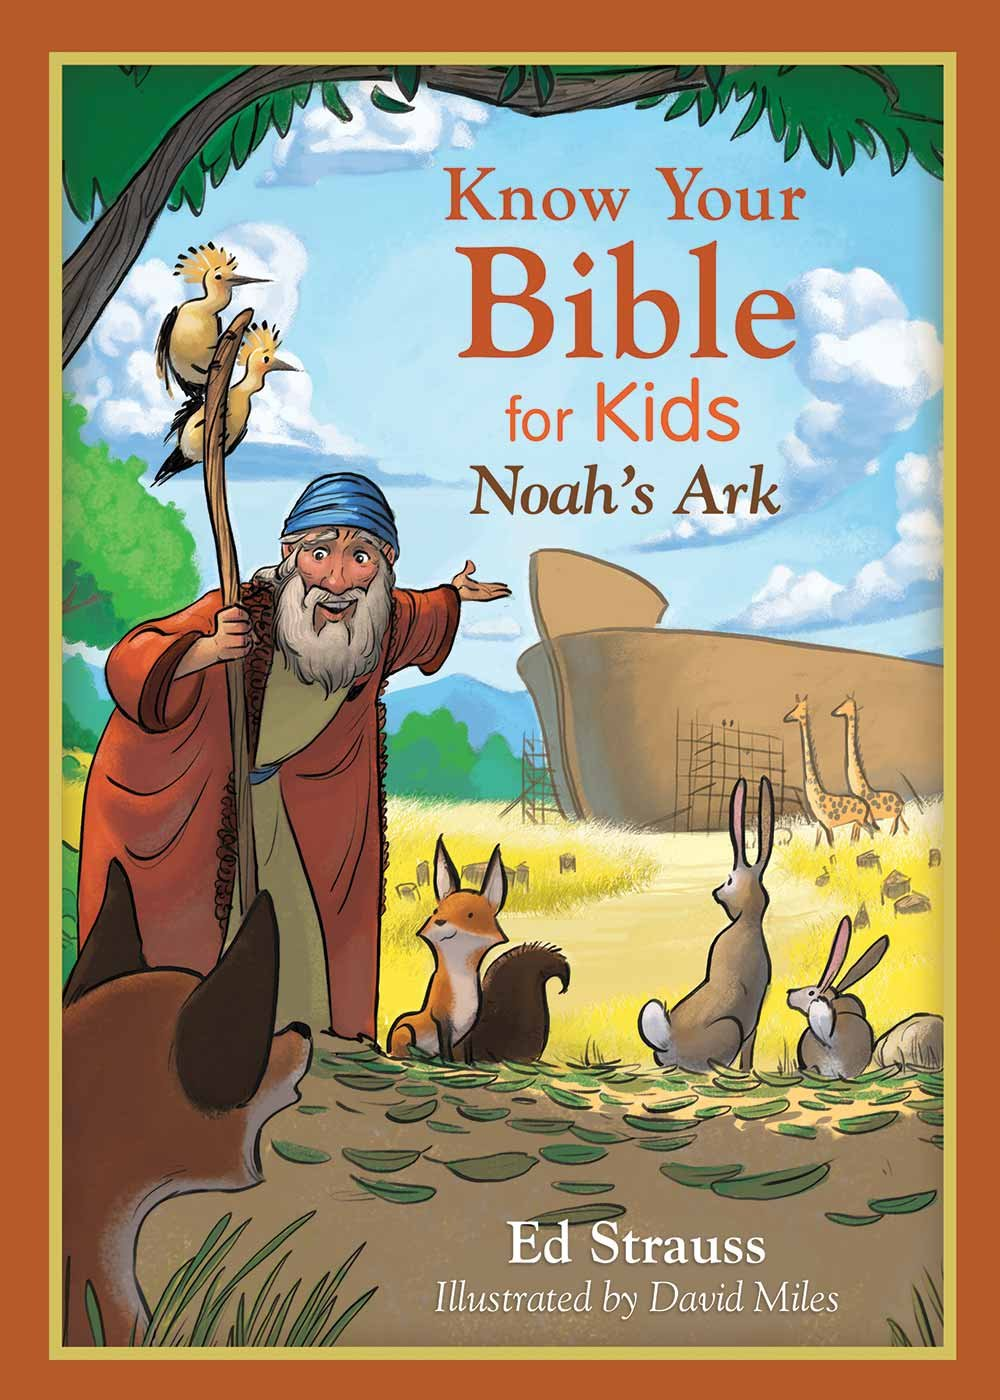 know your bible for kids noah u0027s ark ed strauss 9781630589134